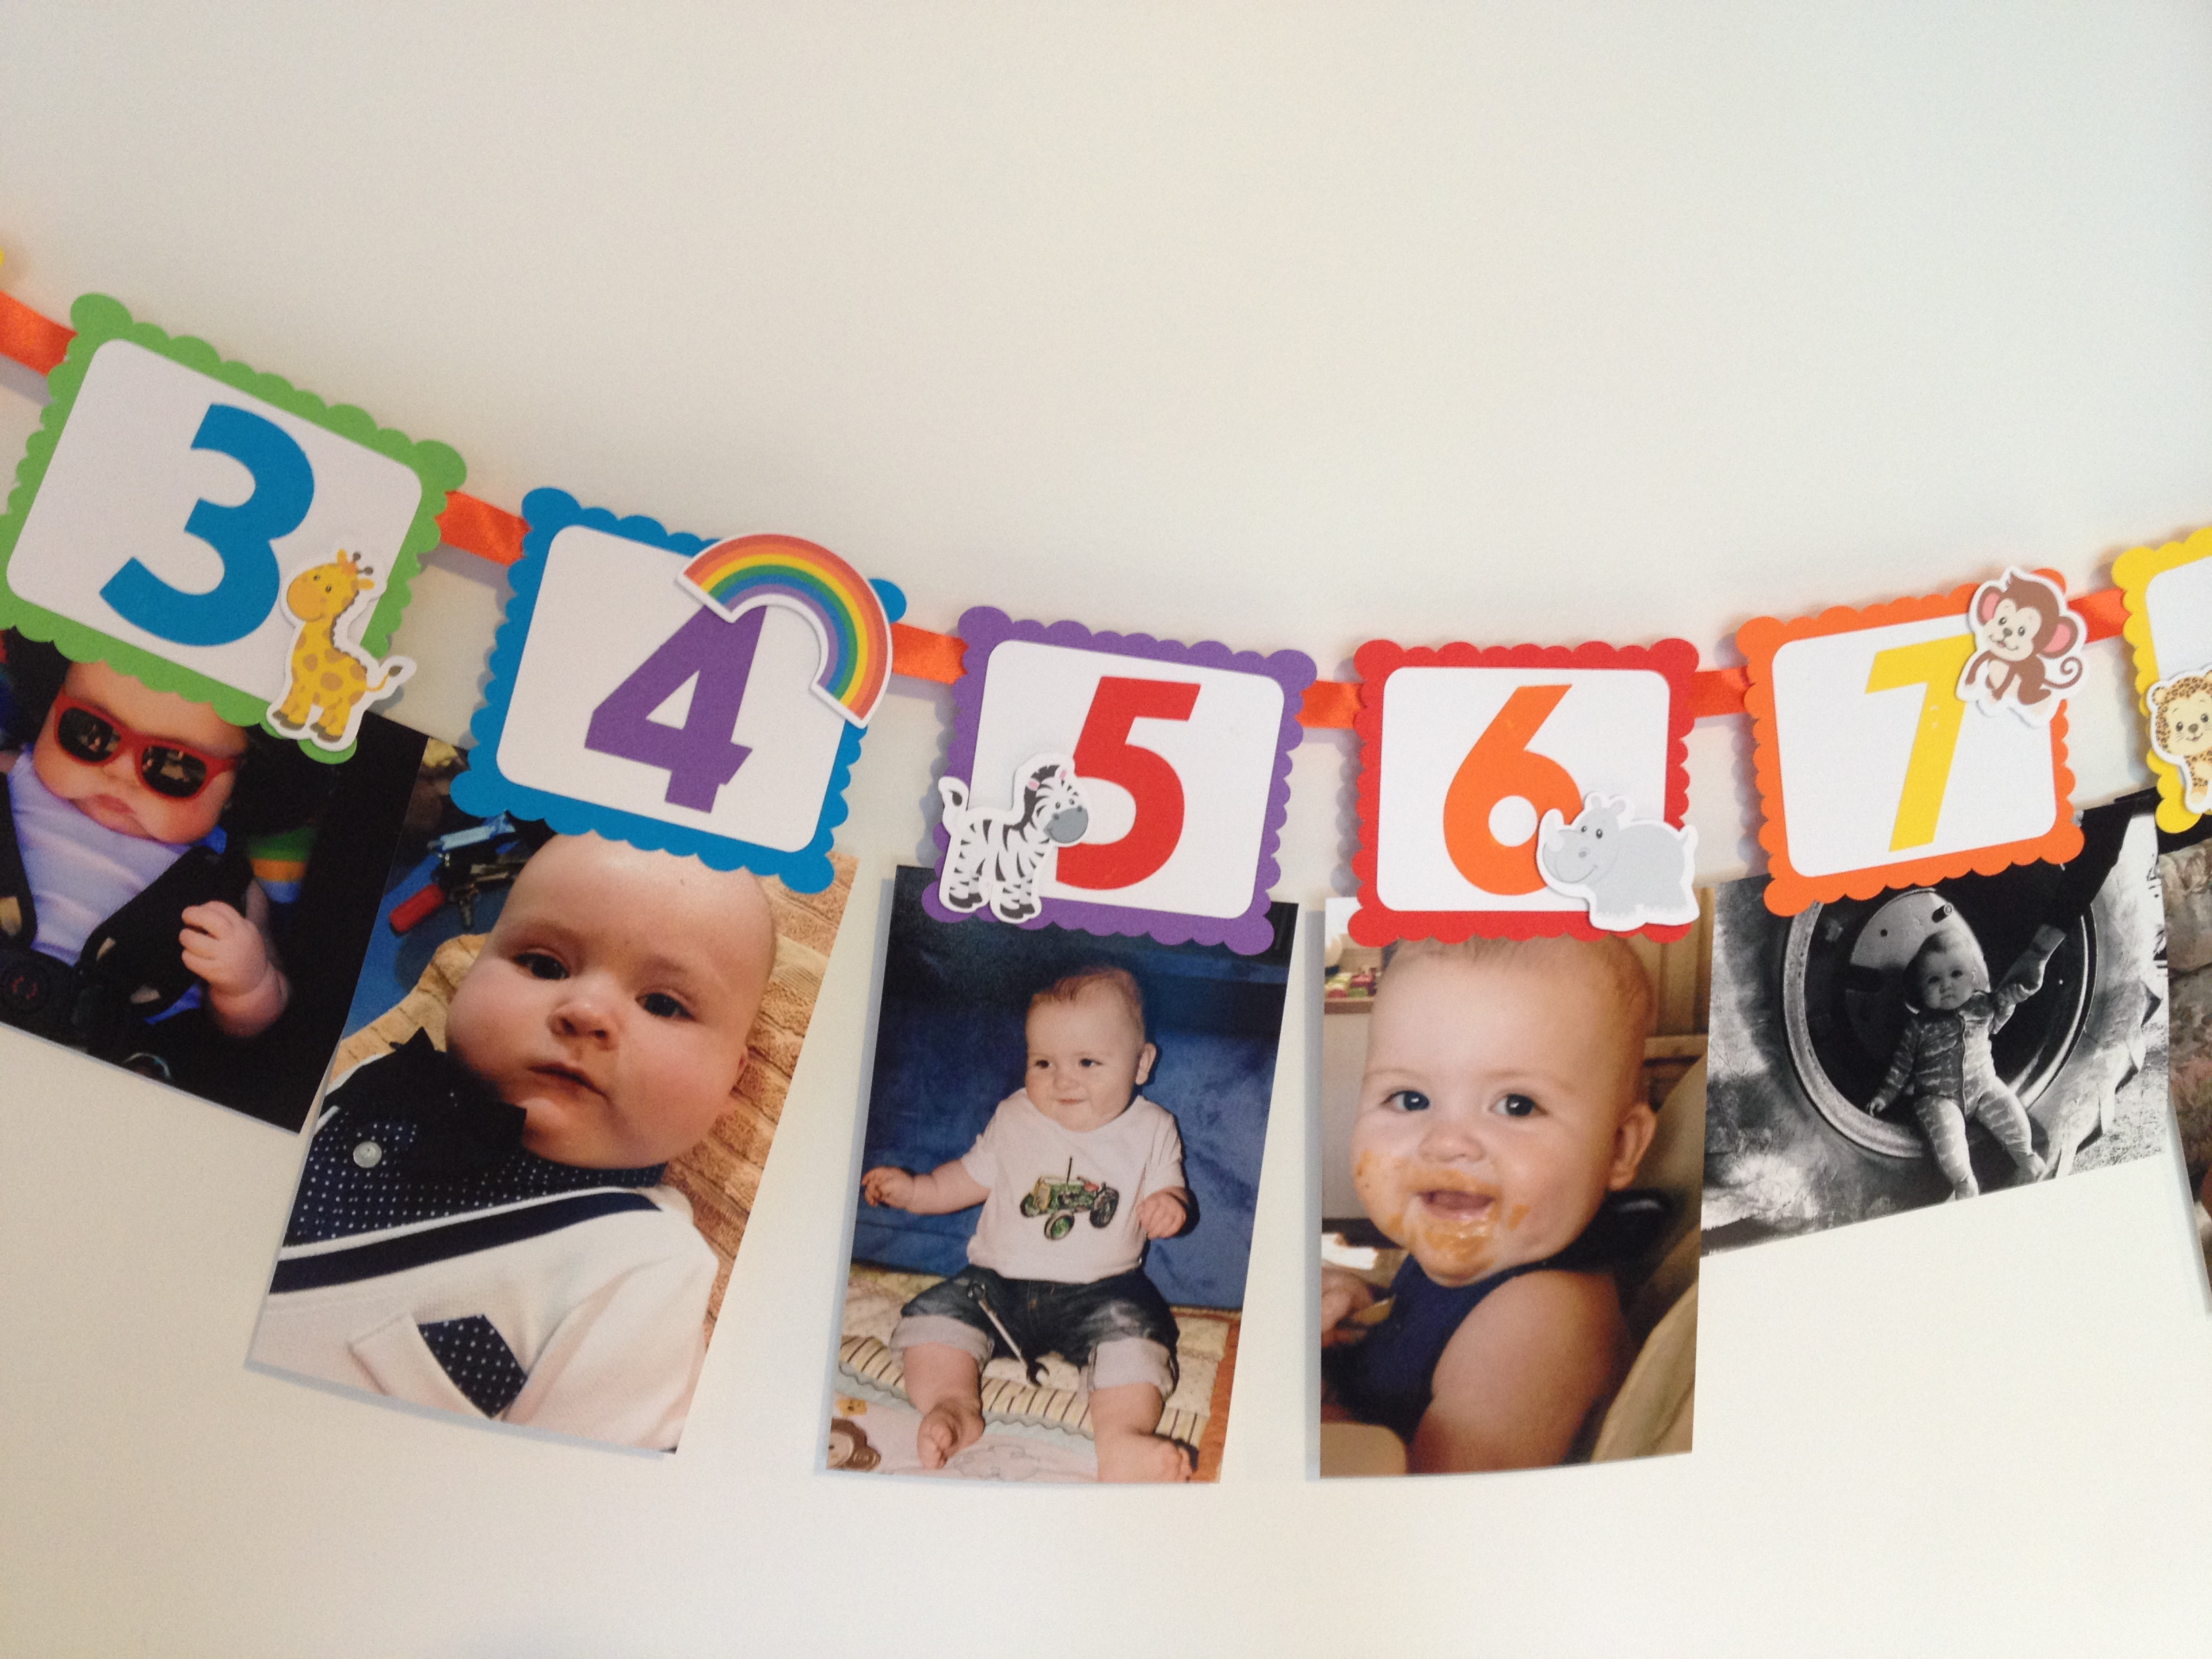 Noahs Ark first birthday photo banner